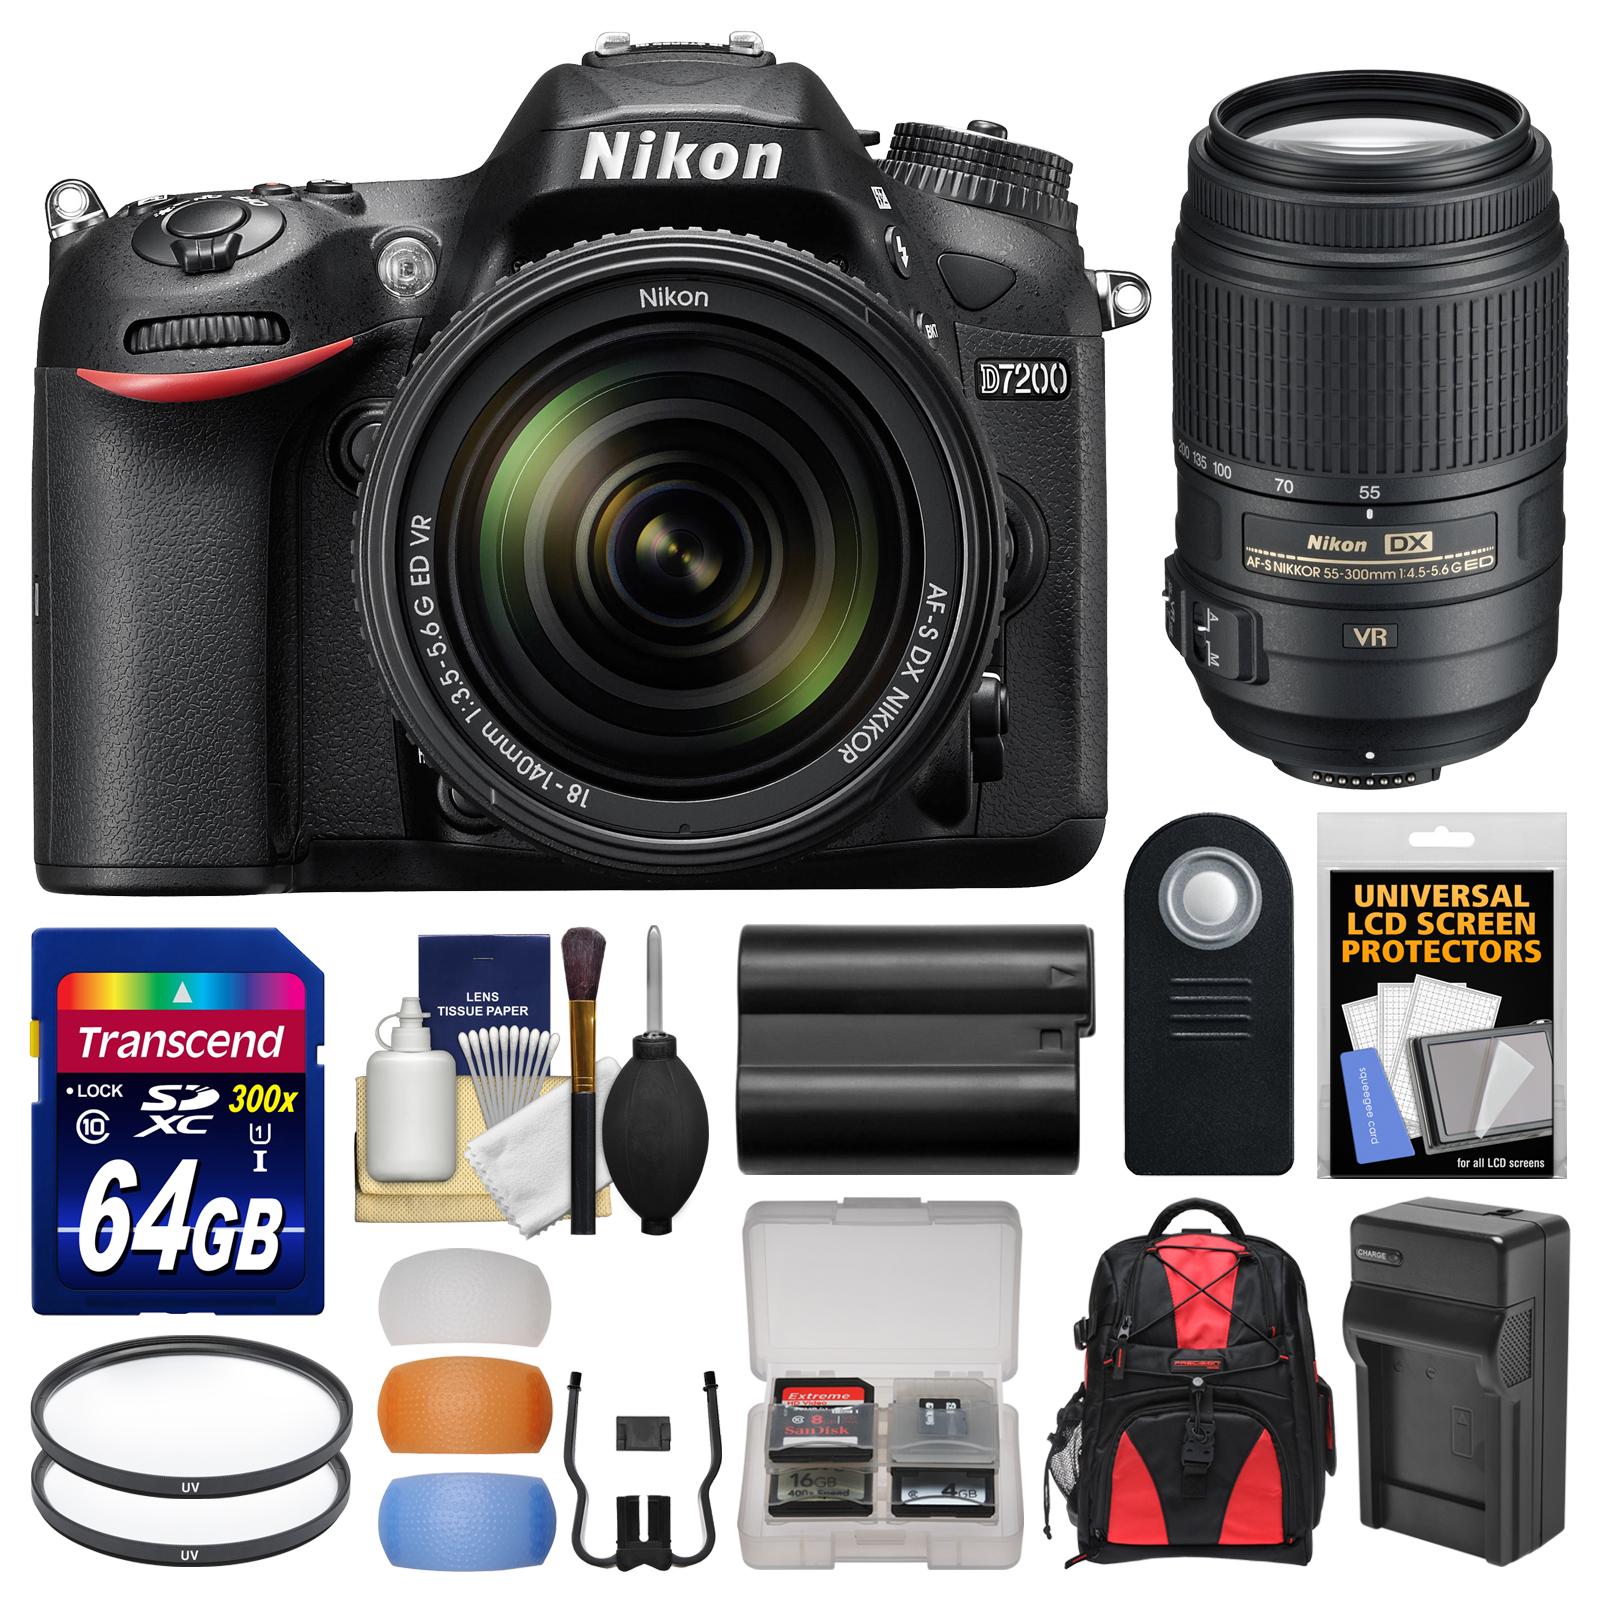 Nikon D7200 Wi-Fi Digital SLR Camera & 18-140mm VR DX & 55-300mm VR Lens with 64GB Card + Backpack + Battery/Charger + Filters + Remote + Kit